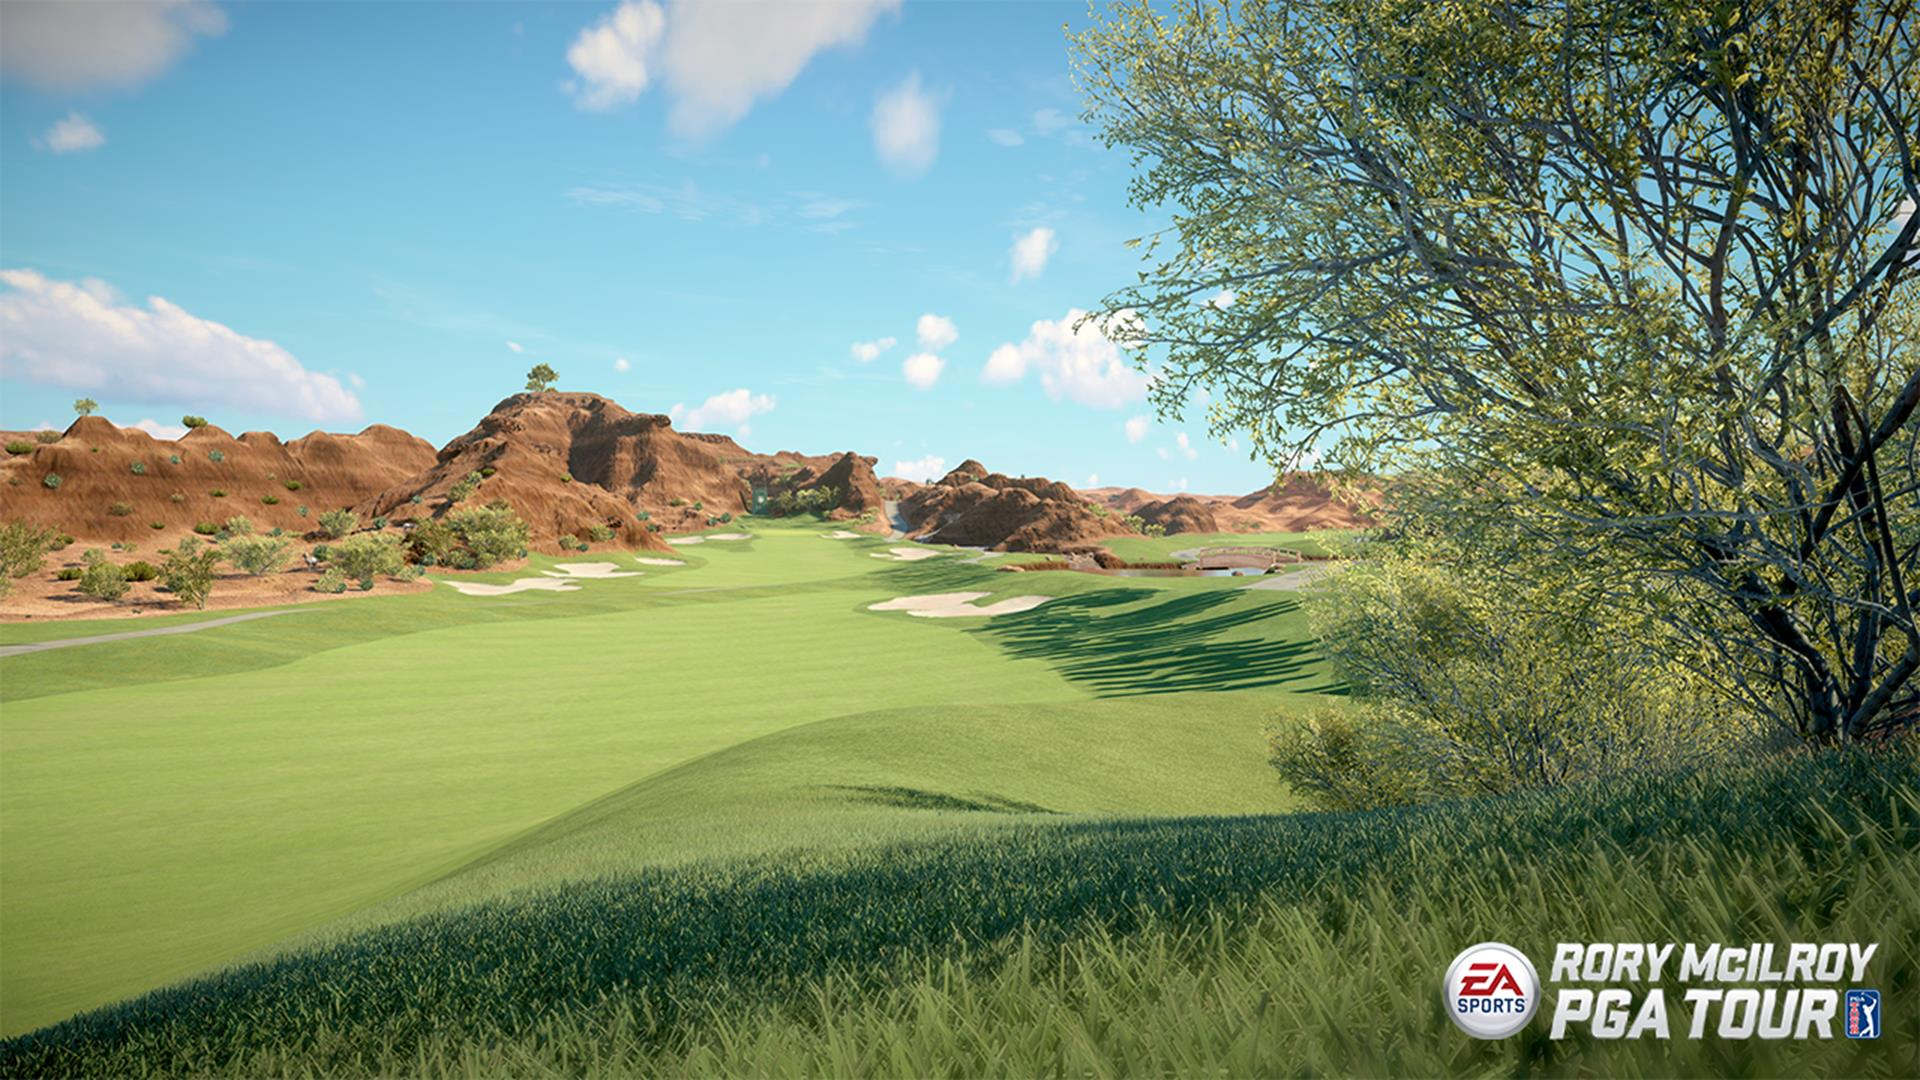 Just like older games, Rory McIlroy PGA Tour will come ...